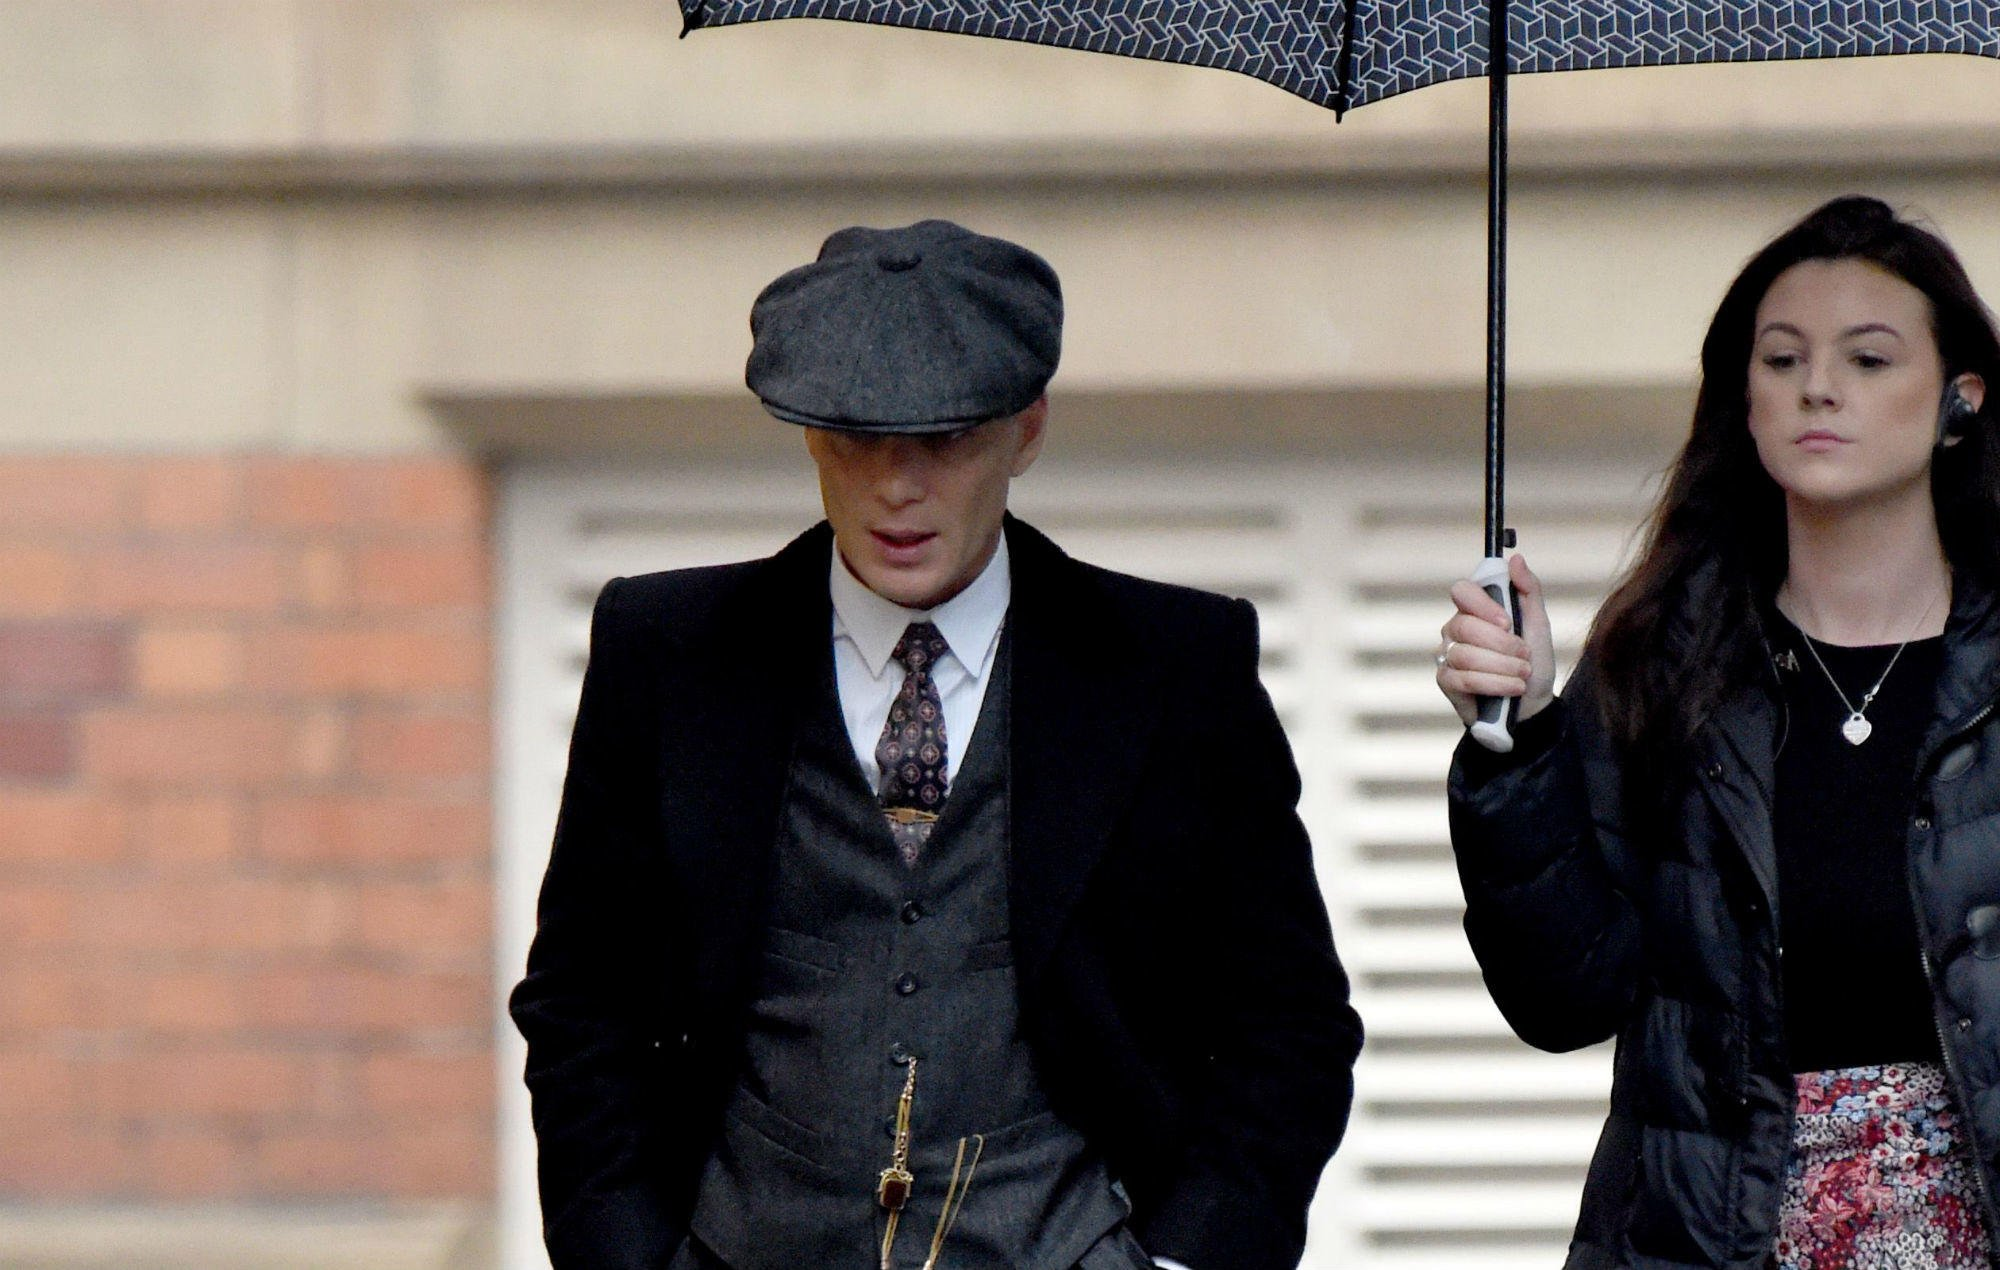 Check out the latest new cast members and new photos for 'Peaky Blinders' series 5 https://t.co/dTfsXm7P0l https://t.co/t49EJboQgv